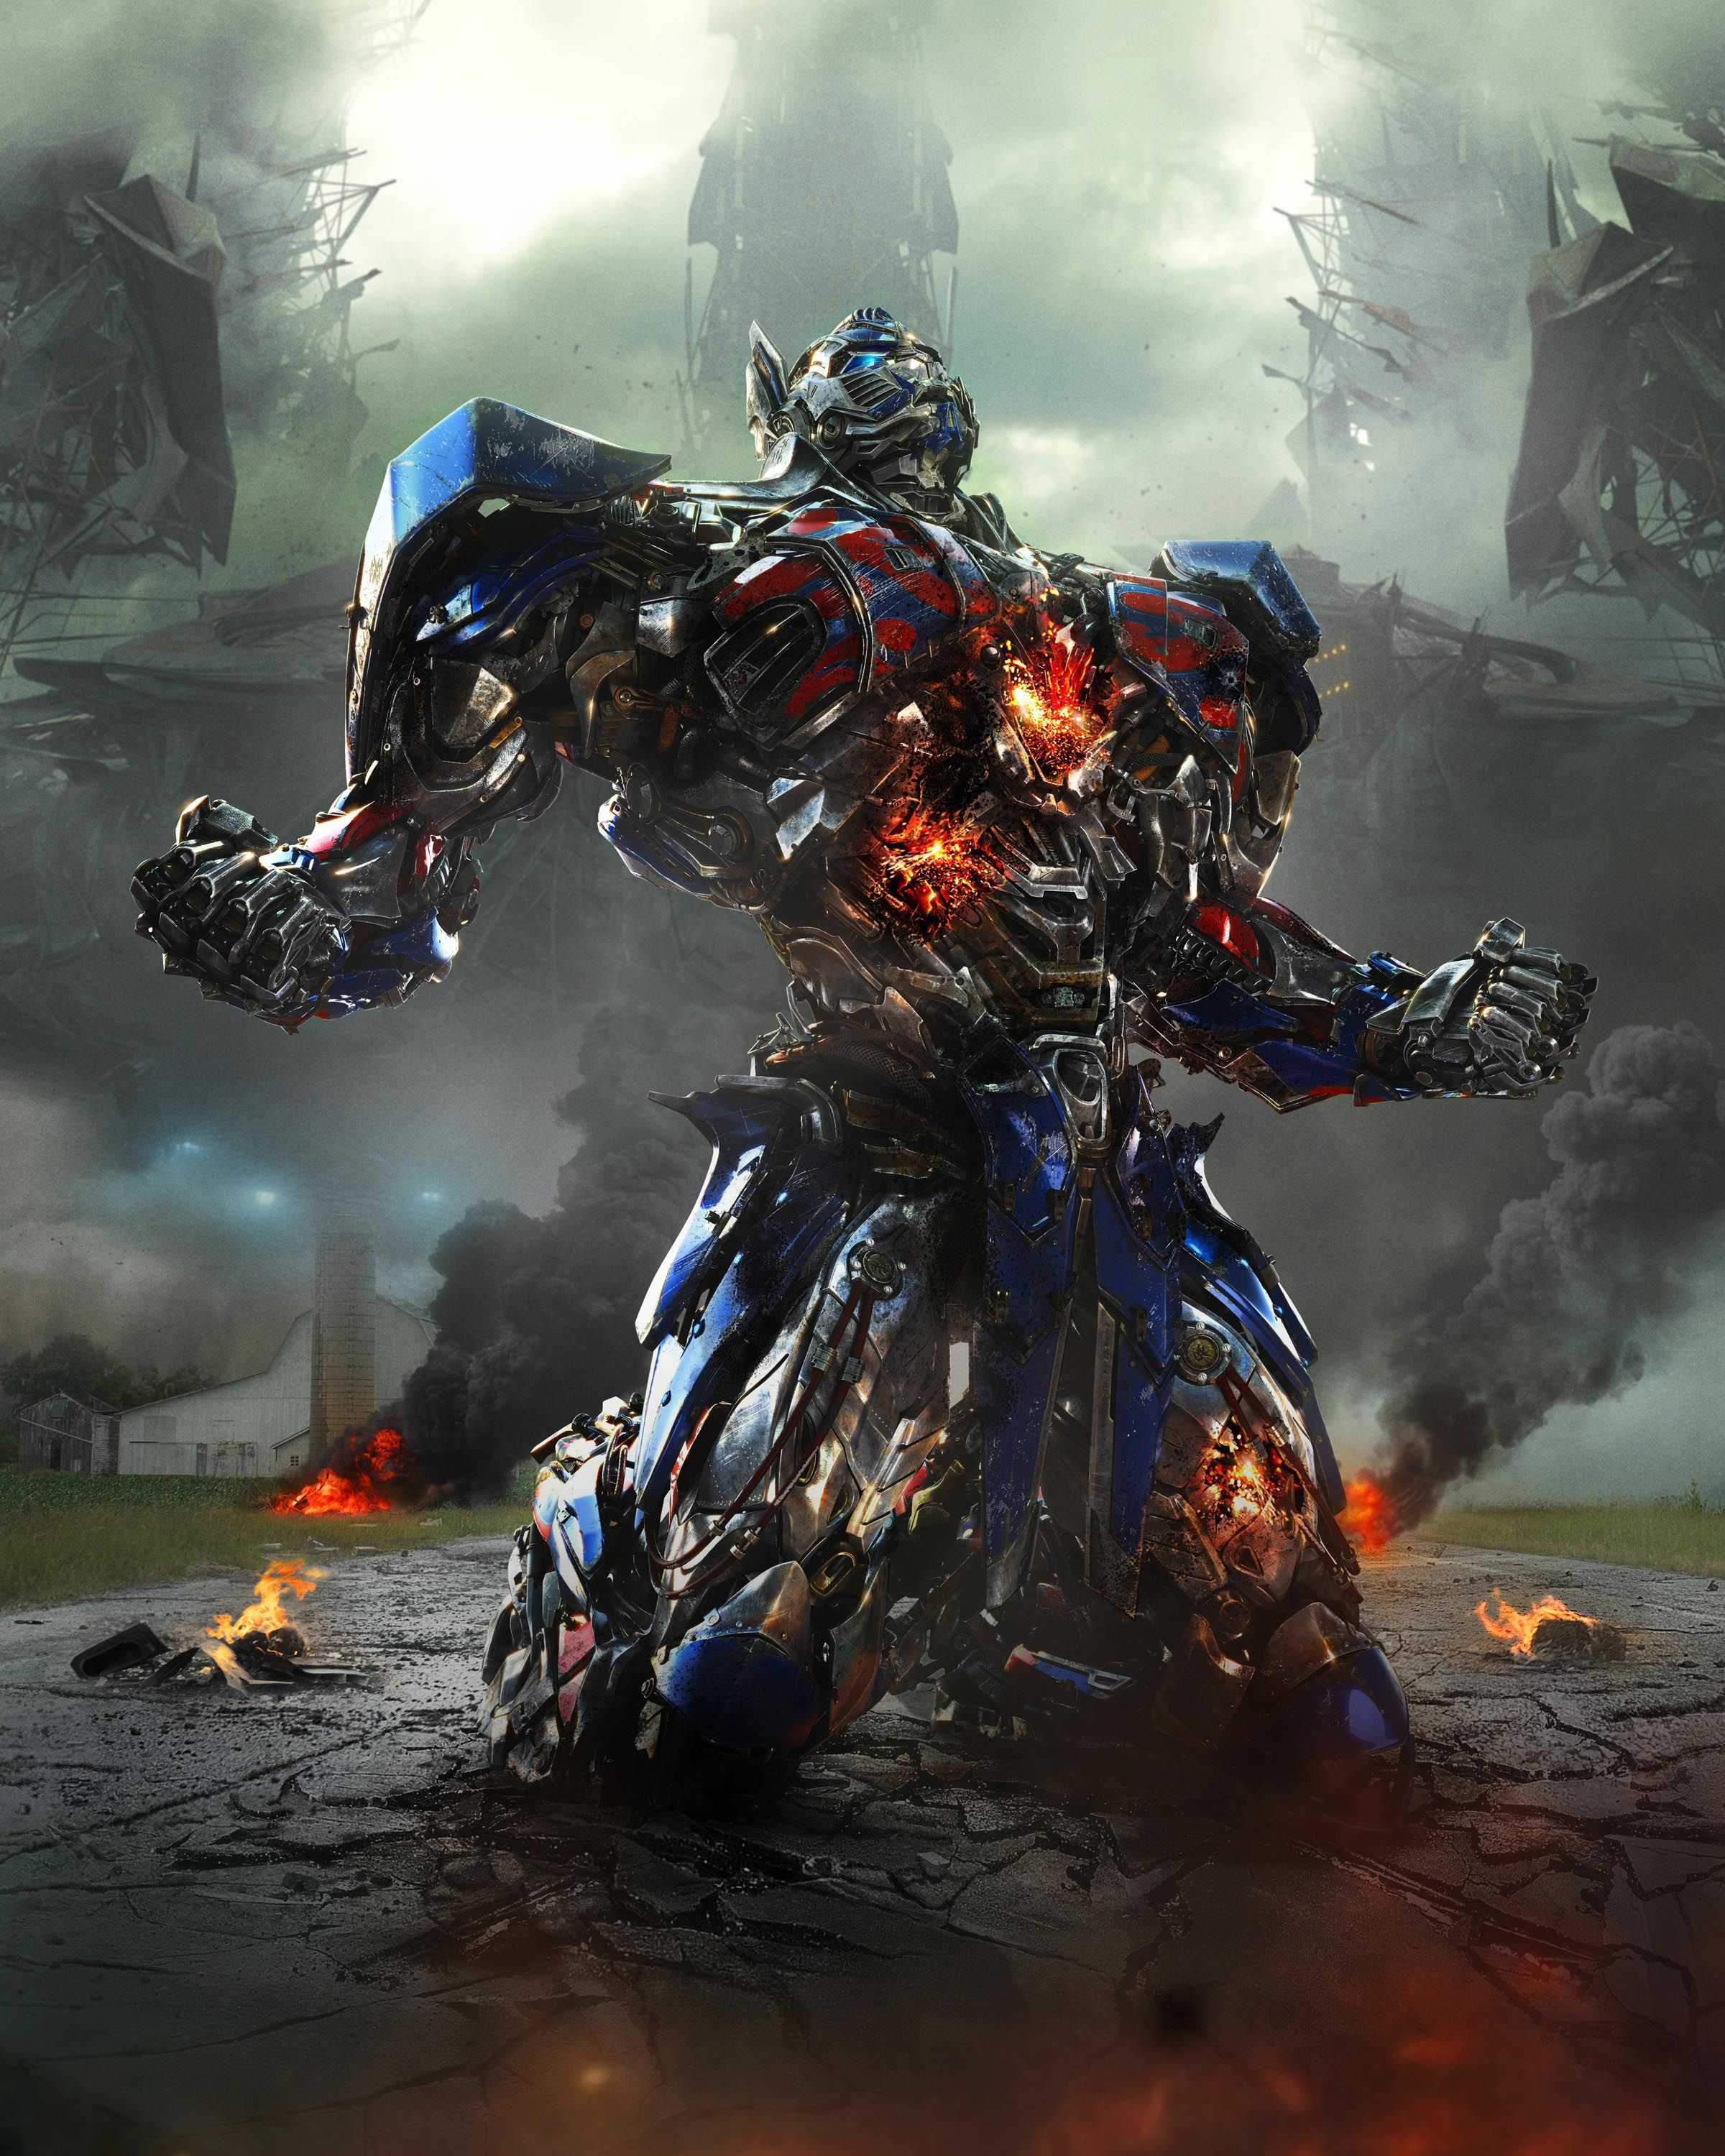 Transformers Sequels Spinoffs Planned In Marvel Style